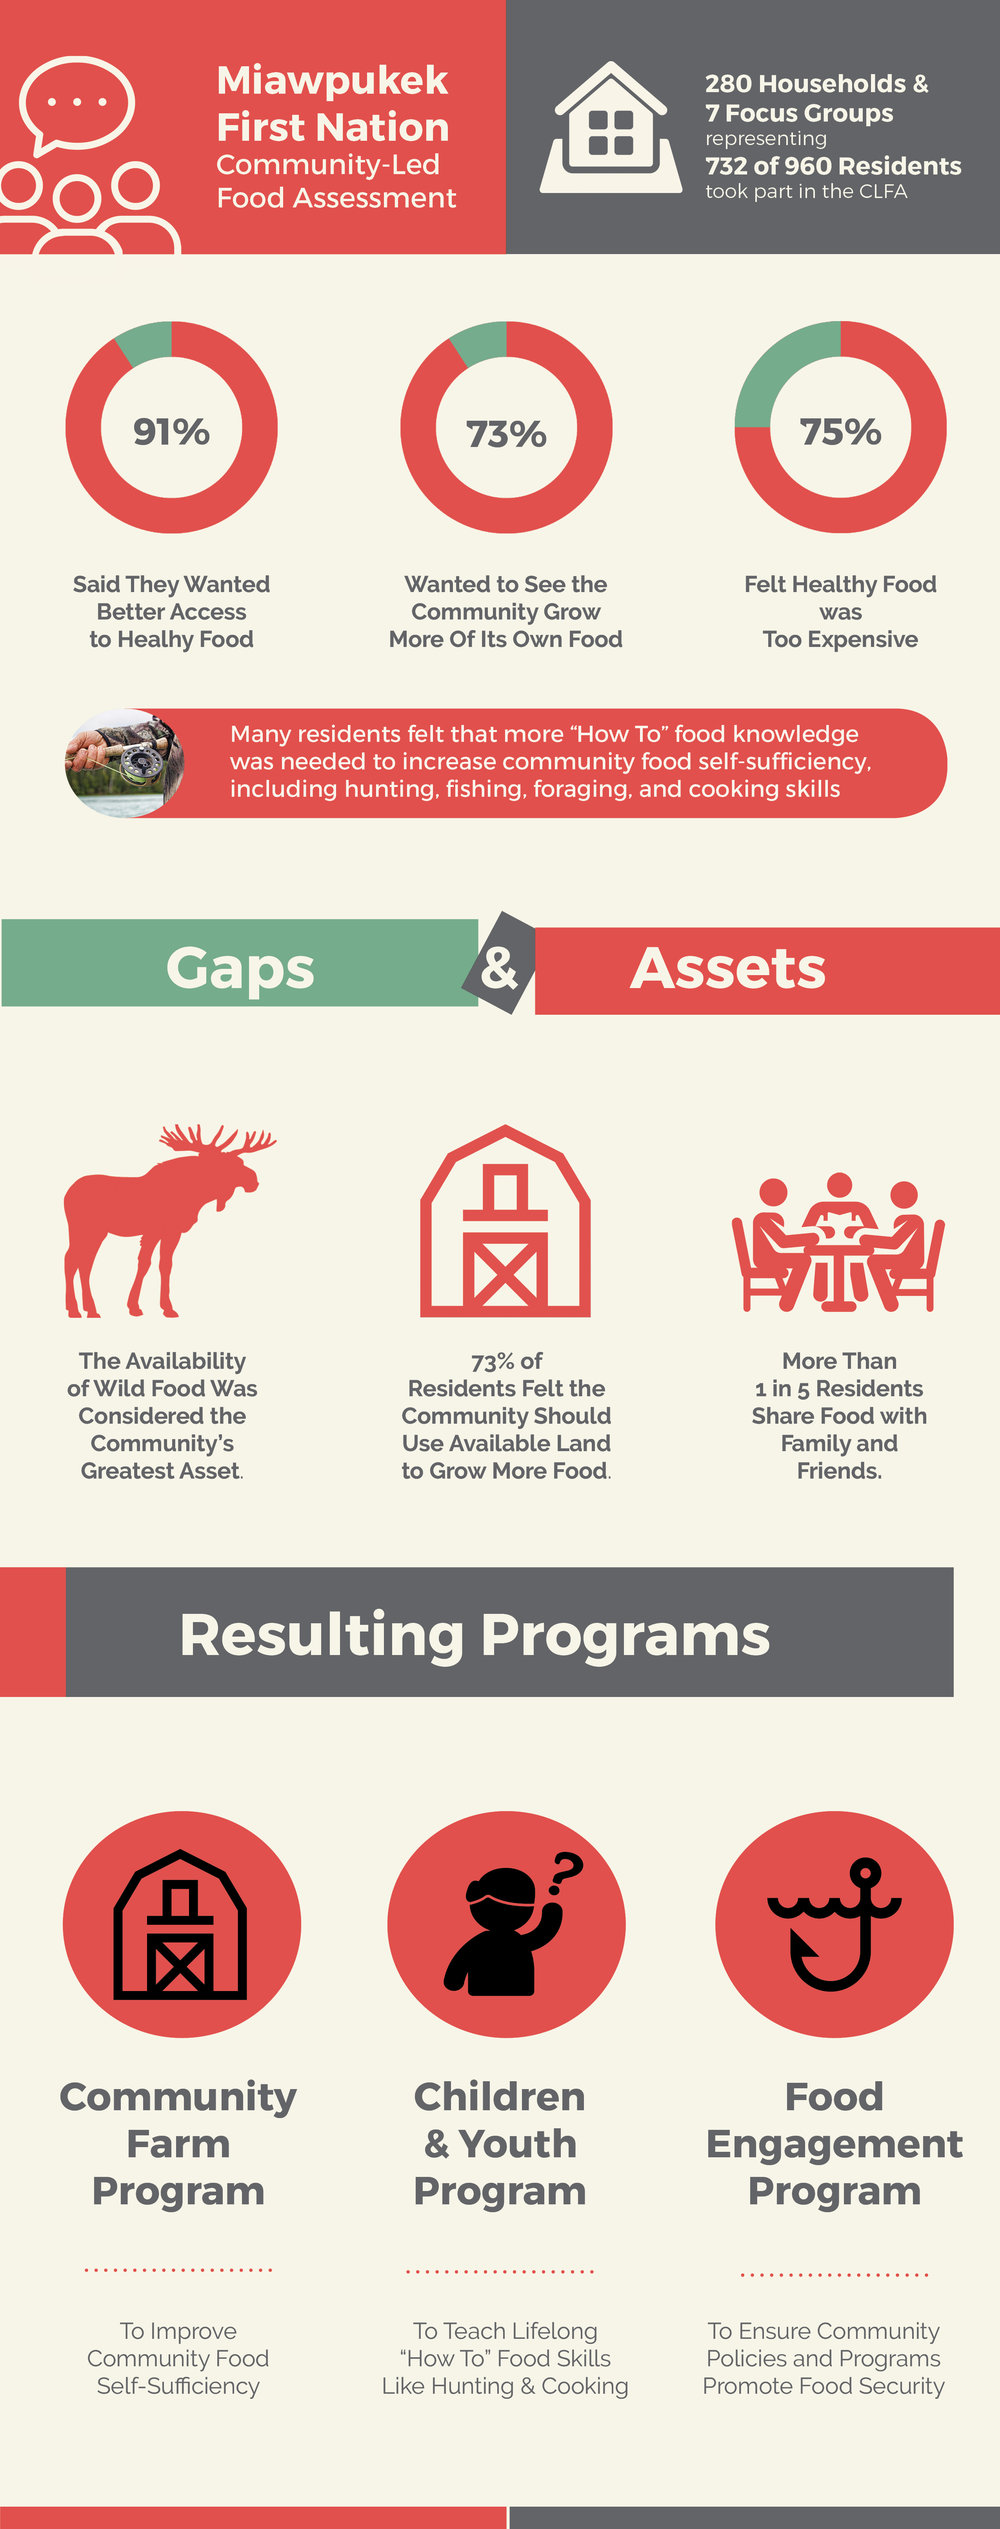 miawpukek CLFA (updated).jpg